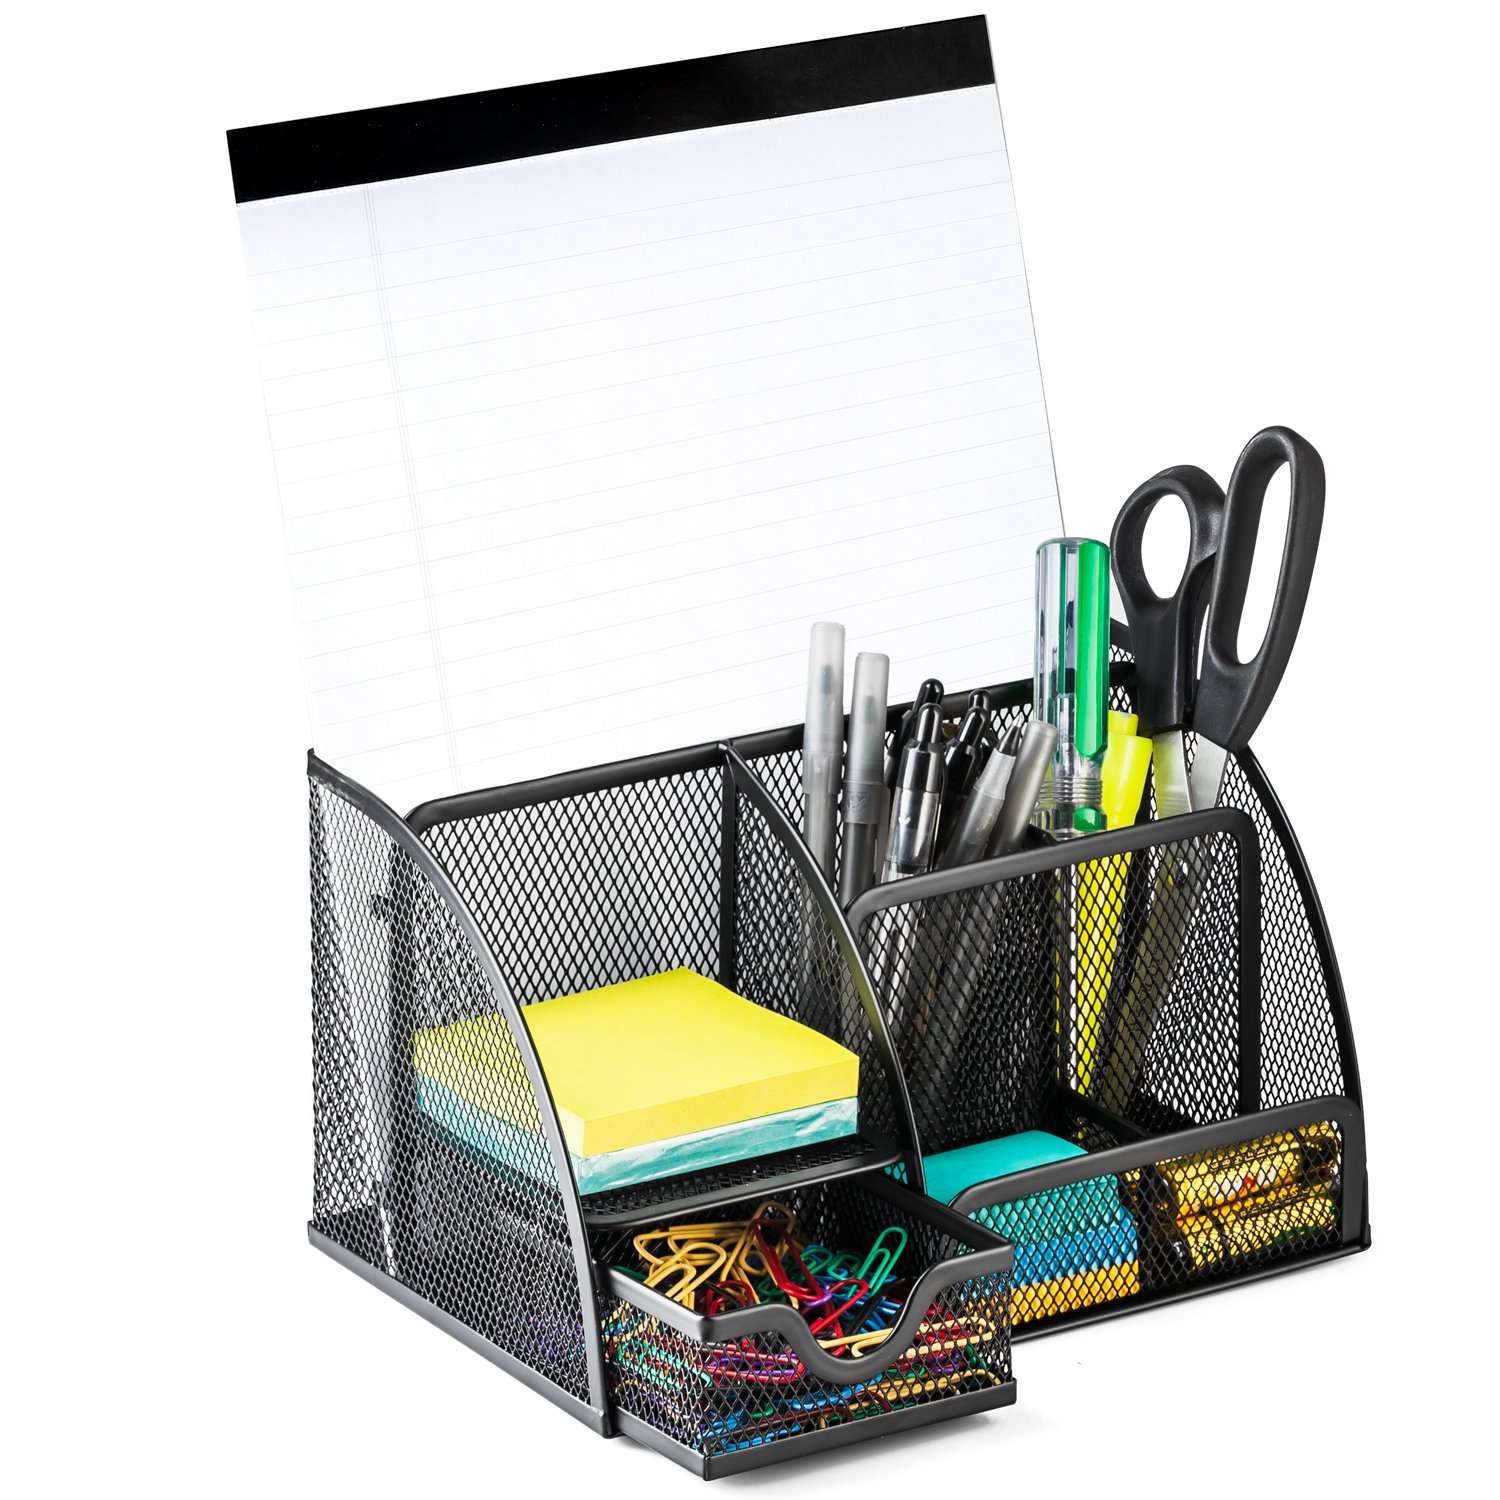 organiser tray glyma buy mesh walmart best organizer metal online co drawer staples desk tier